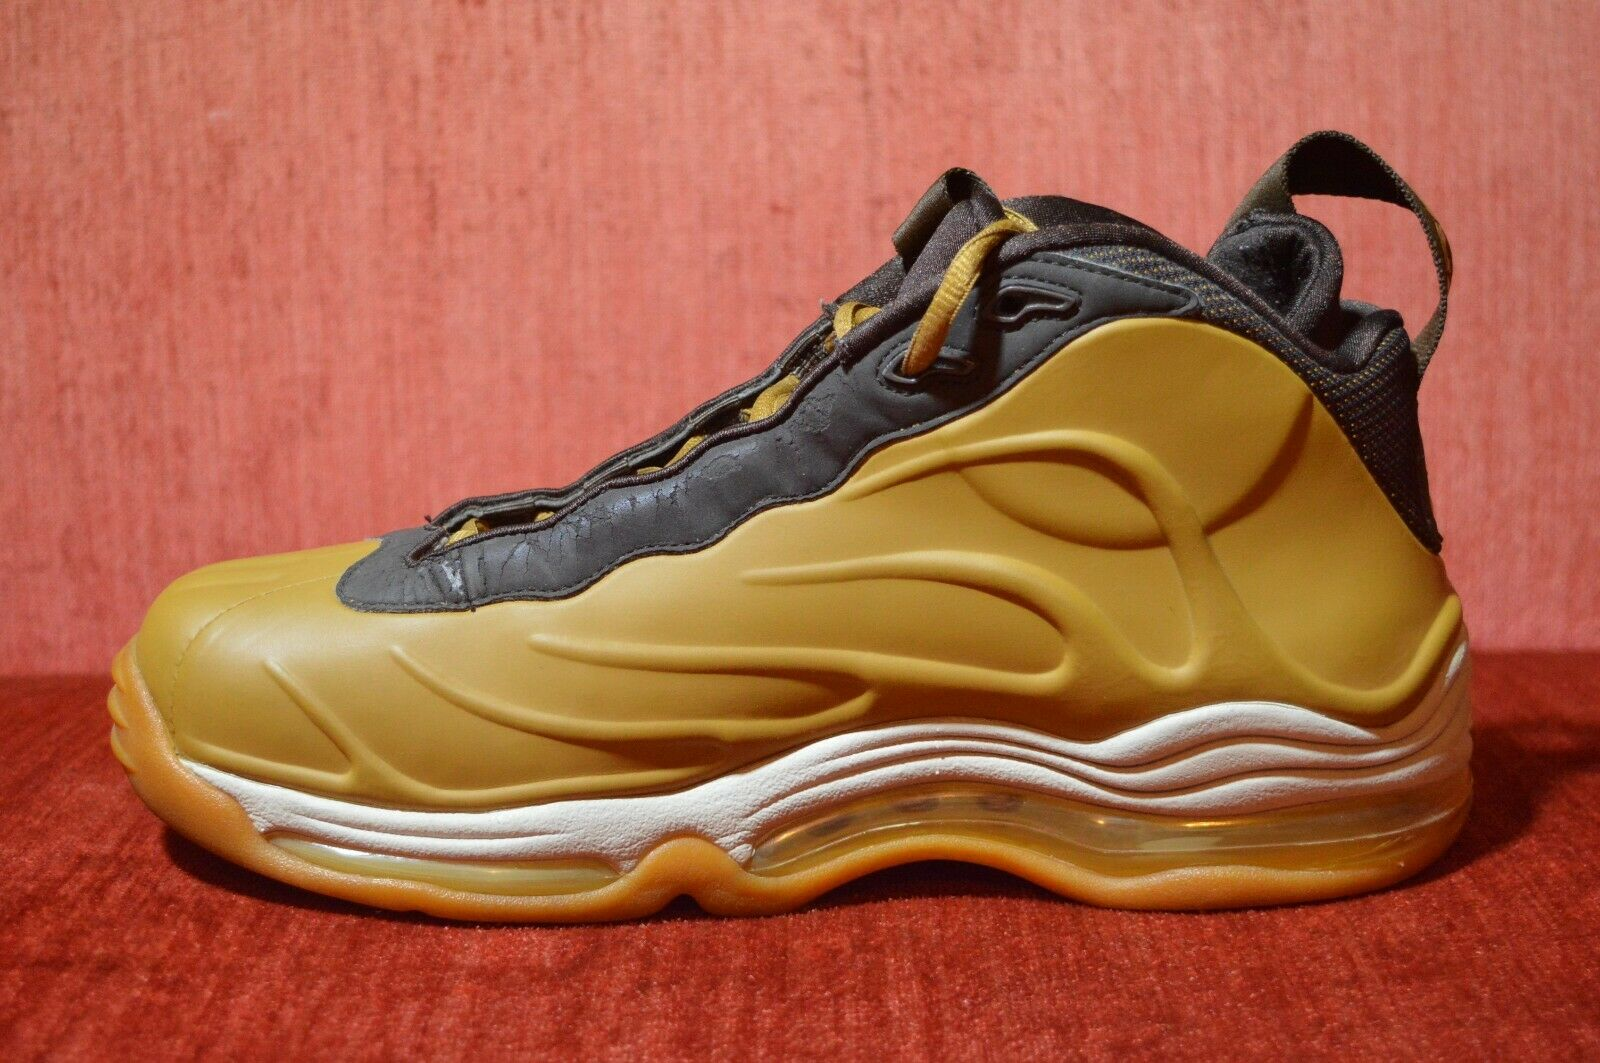 375a7635720 Clean 2005 Nike Total Air Foamposite Max Wheat Brown Duncan s 307717-721  Size 9 for sale online